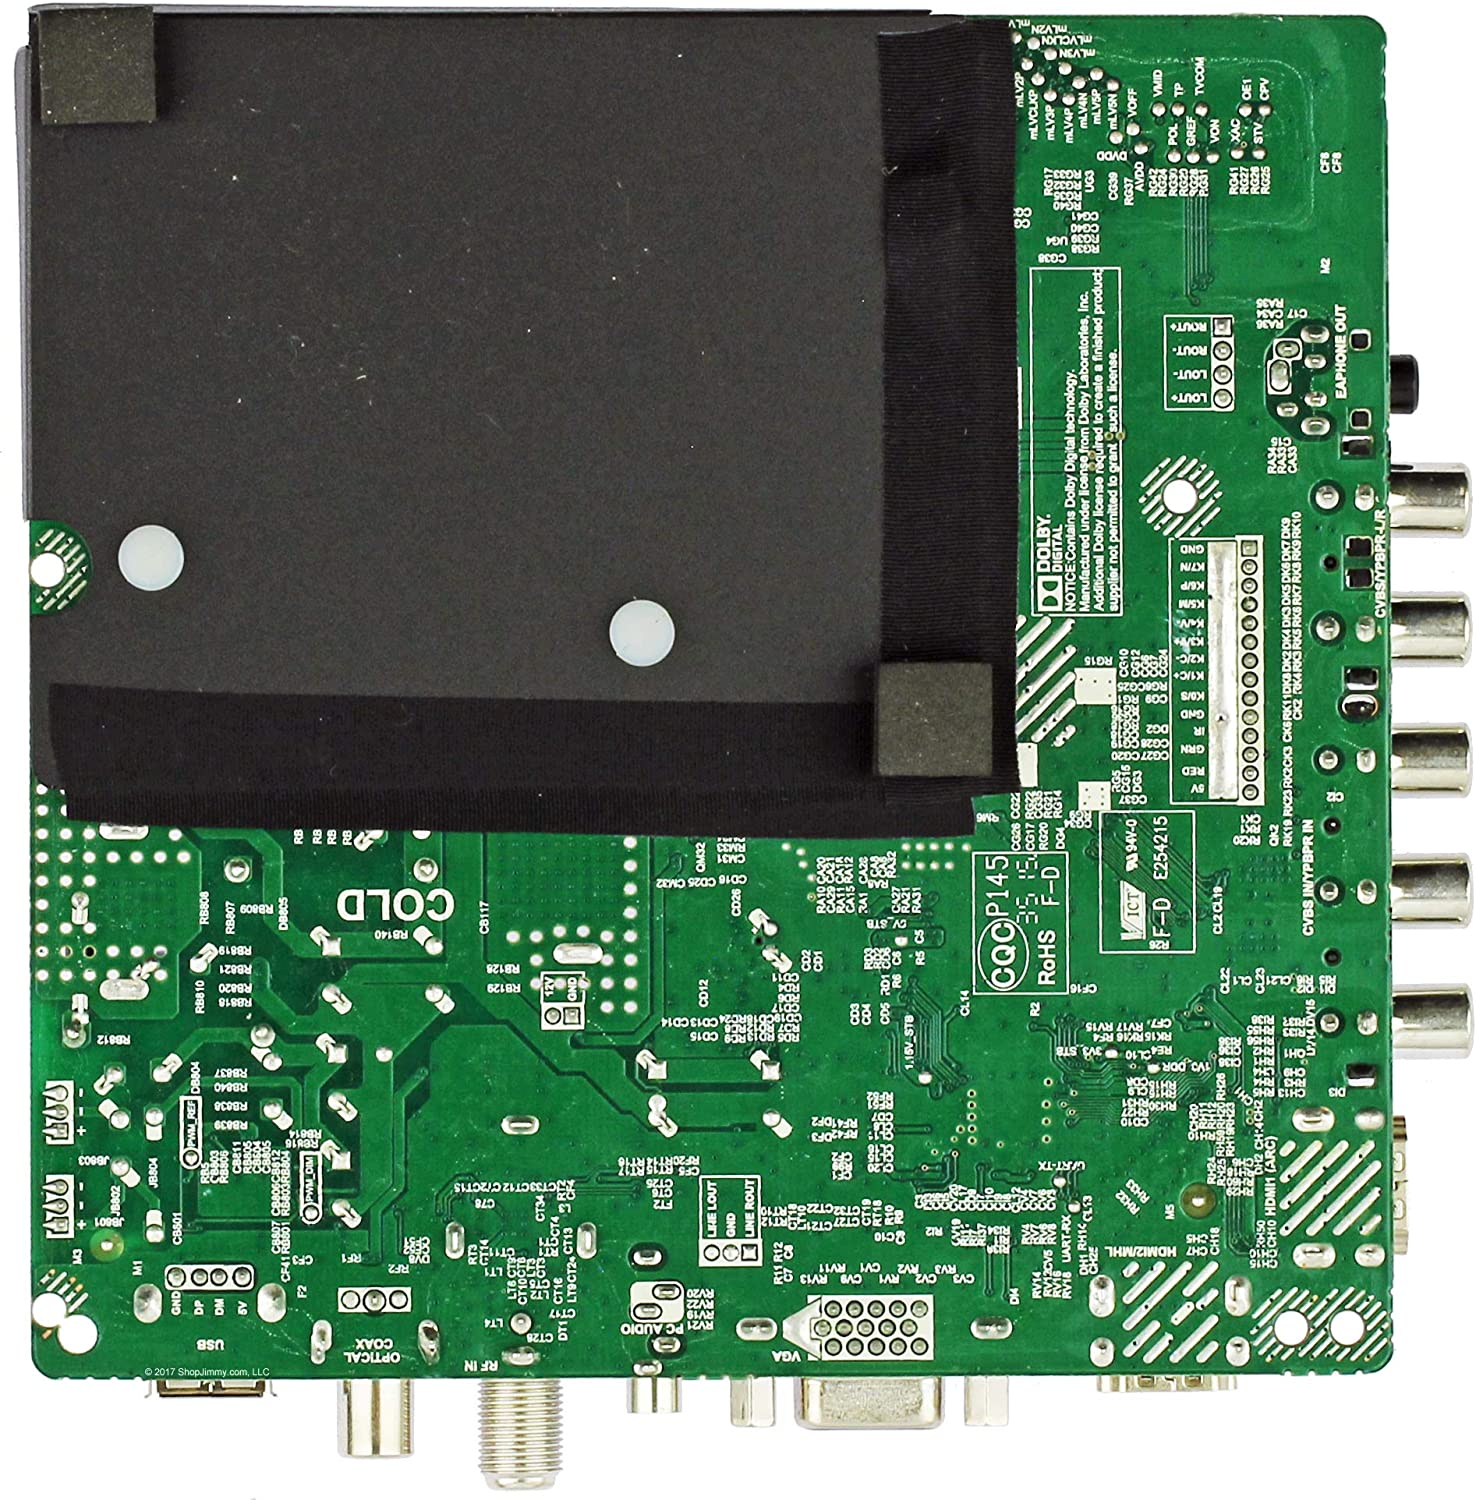 Proscan Main Board//Power Supply for PLDED3280A A1508 // A1509 Serial-See Note